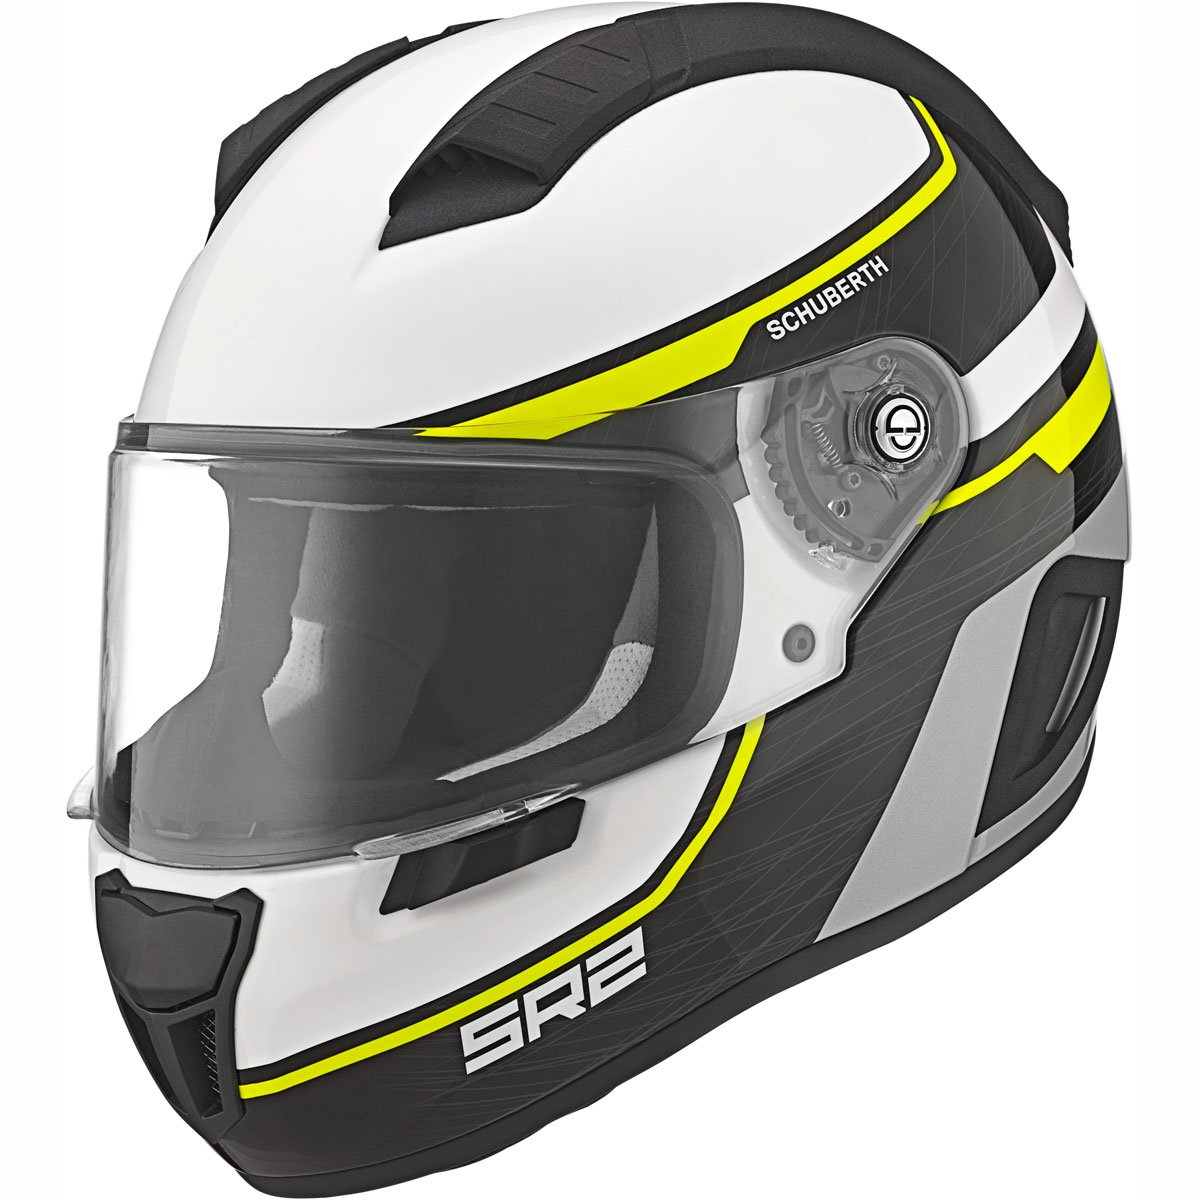 Amazon.es: Schuberth SR2 deportes/Race Full Face casco de moto Lightning amarillo